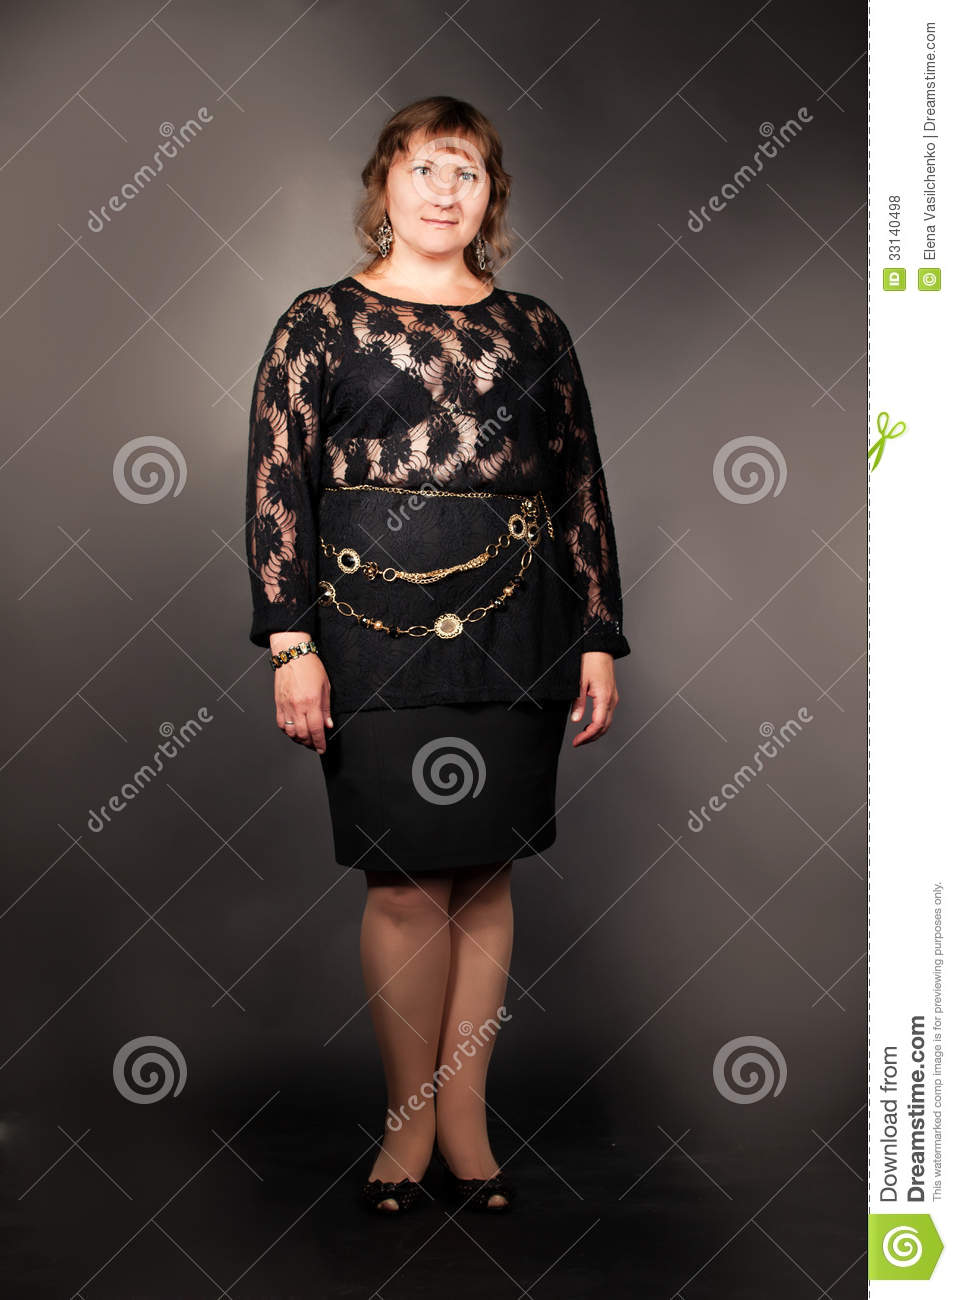 overweight woman posing over dark background stock photo - image of